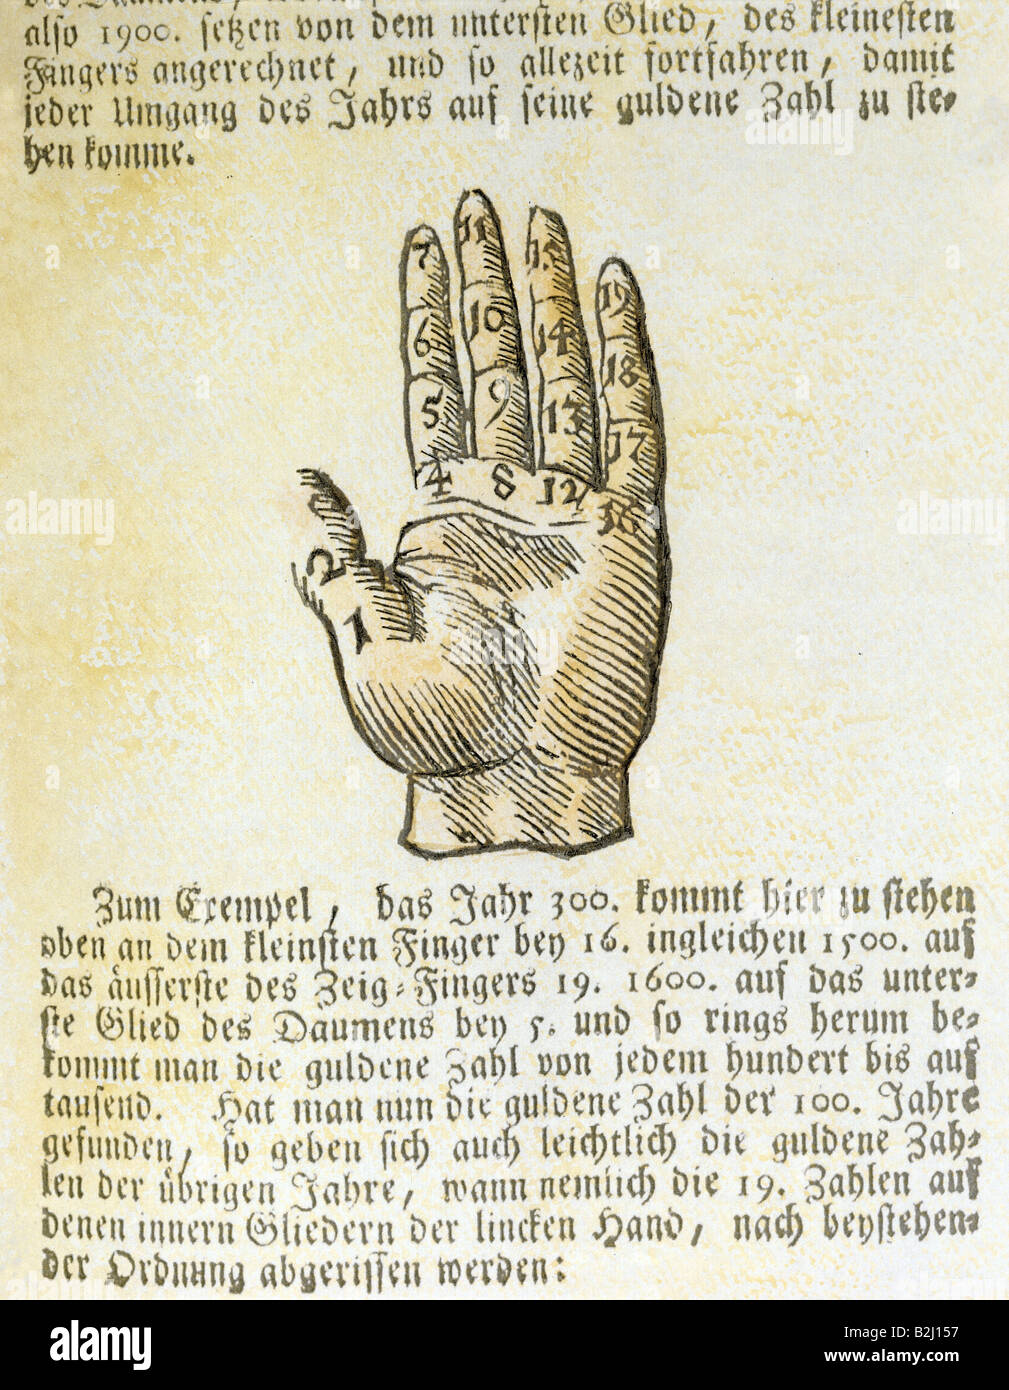 superstition, the hand as a calculating aid, 'Die gueldene Zahl an der Hand abzunehmen' (Calculating the - Stock Image